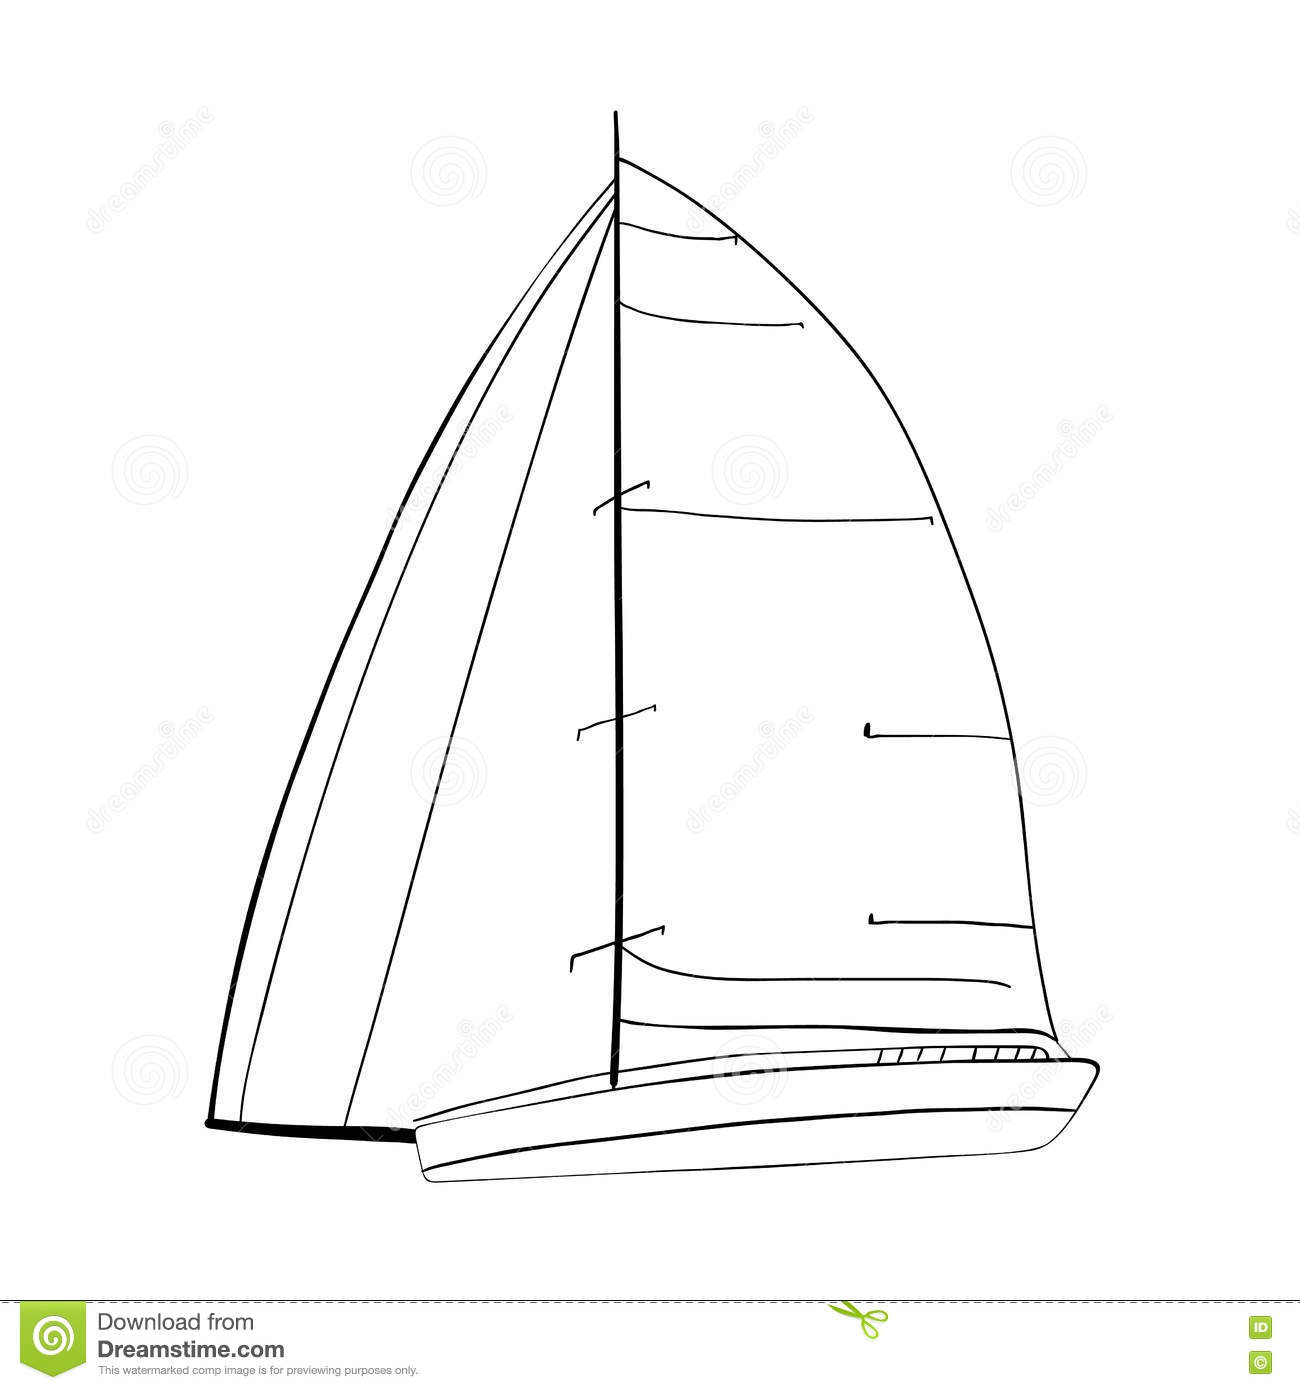 Simple Sailing Boat Diagram